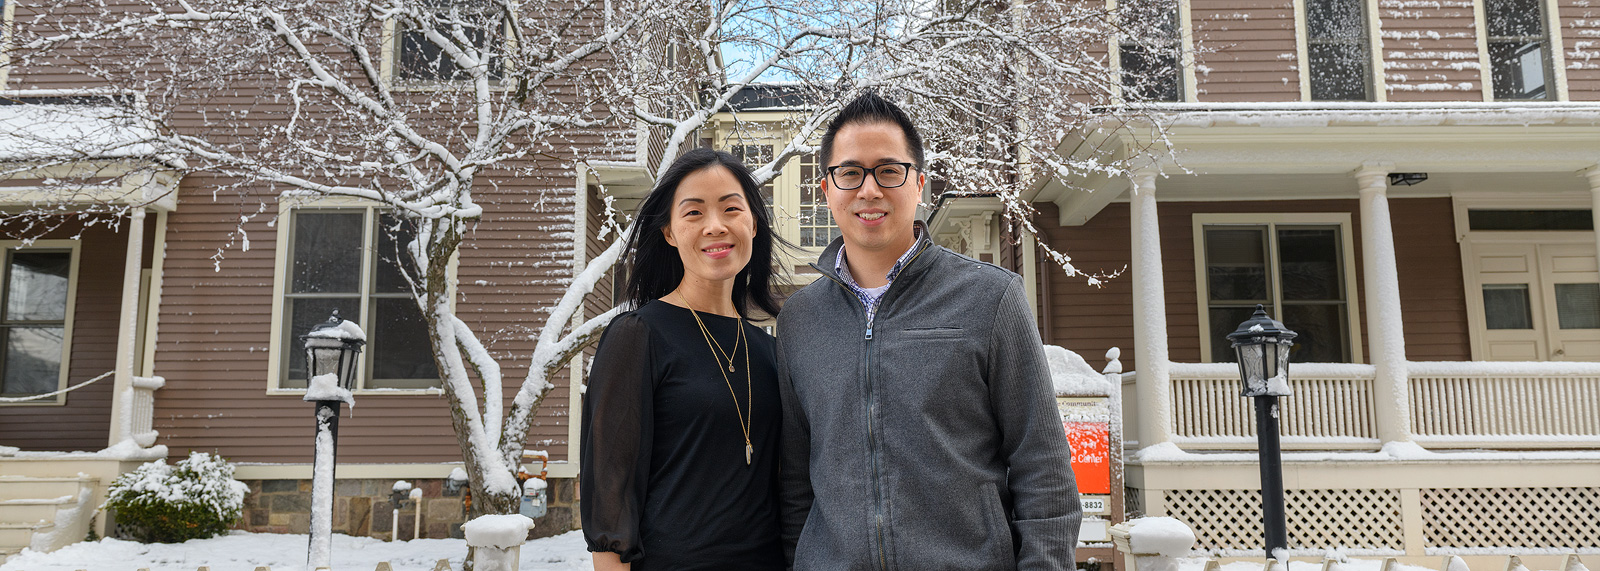 Michigan Language Center owners Julie and Moses Lee